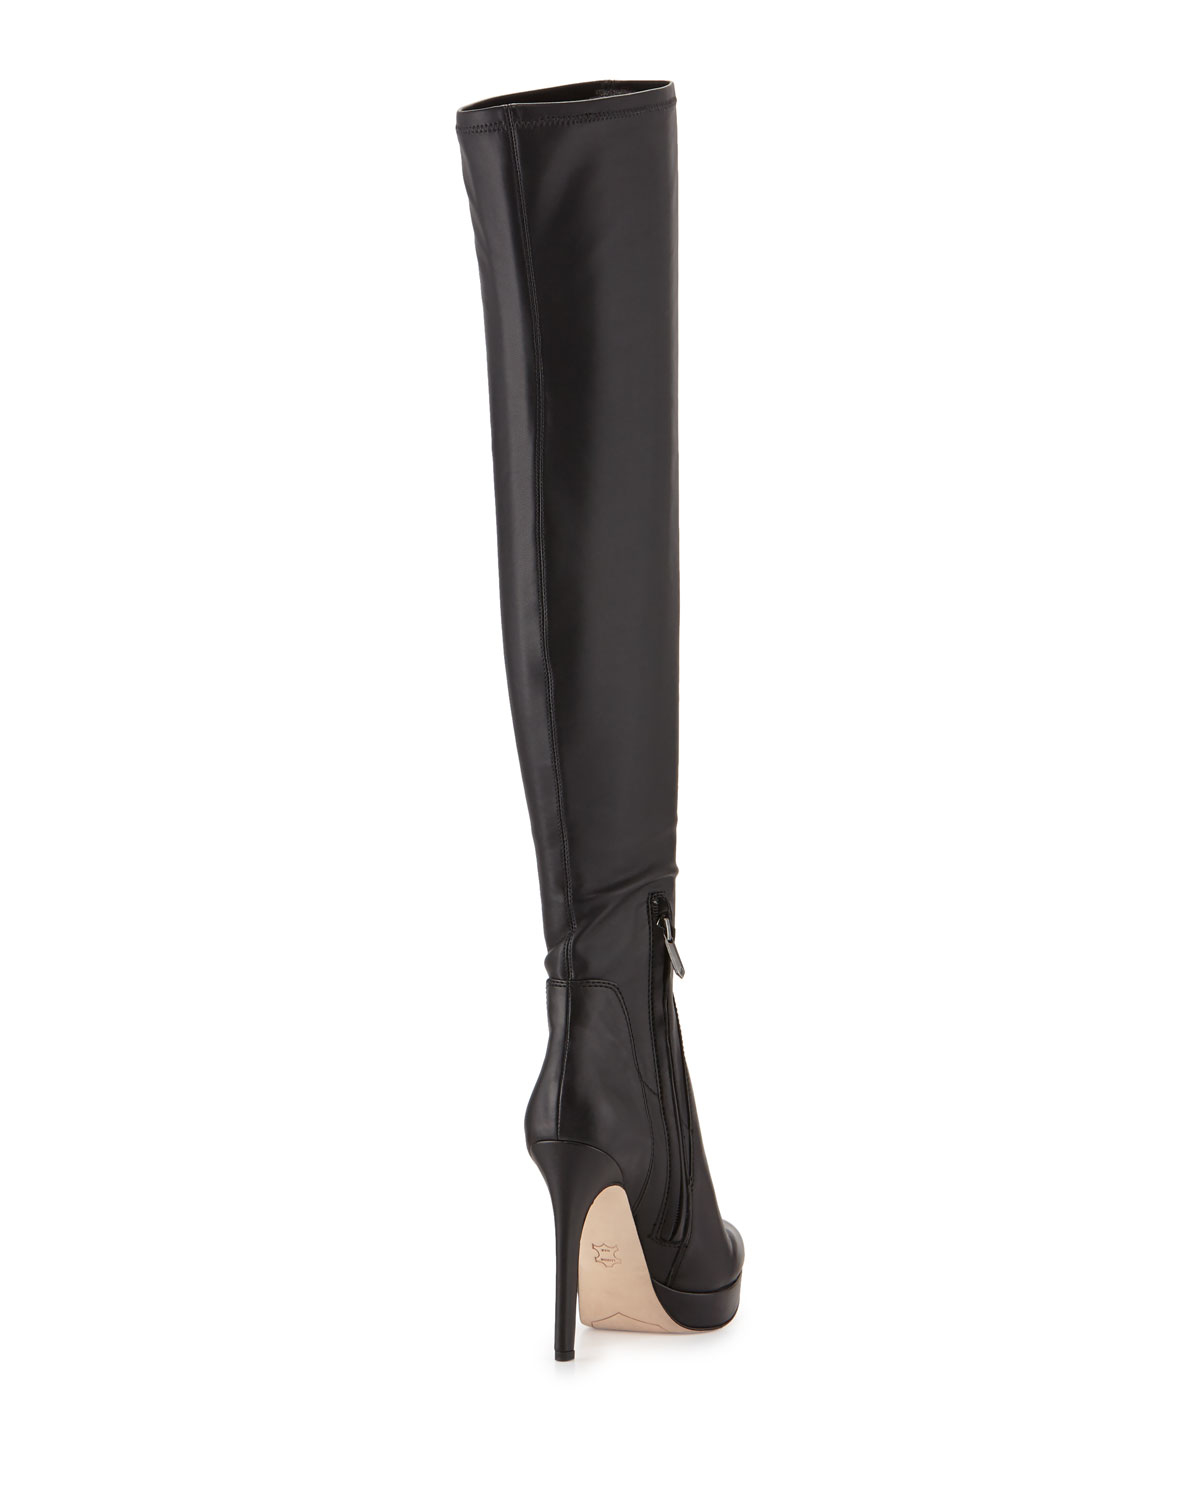 Sam edelman Amber Faux-Leather Over-The-Knee Boots in Black | Lyst